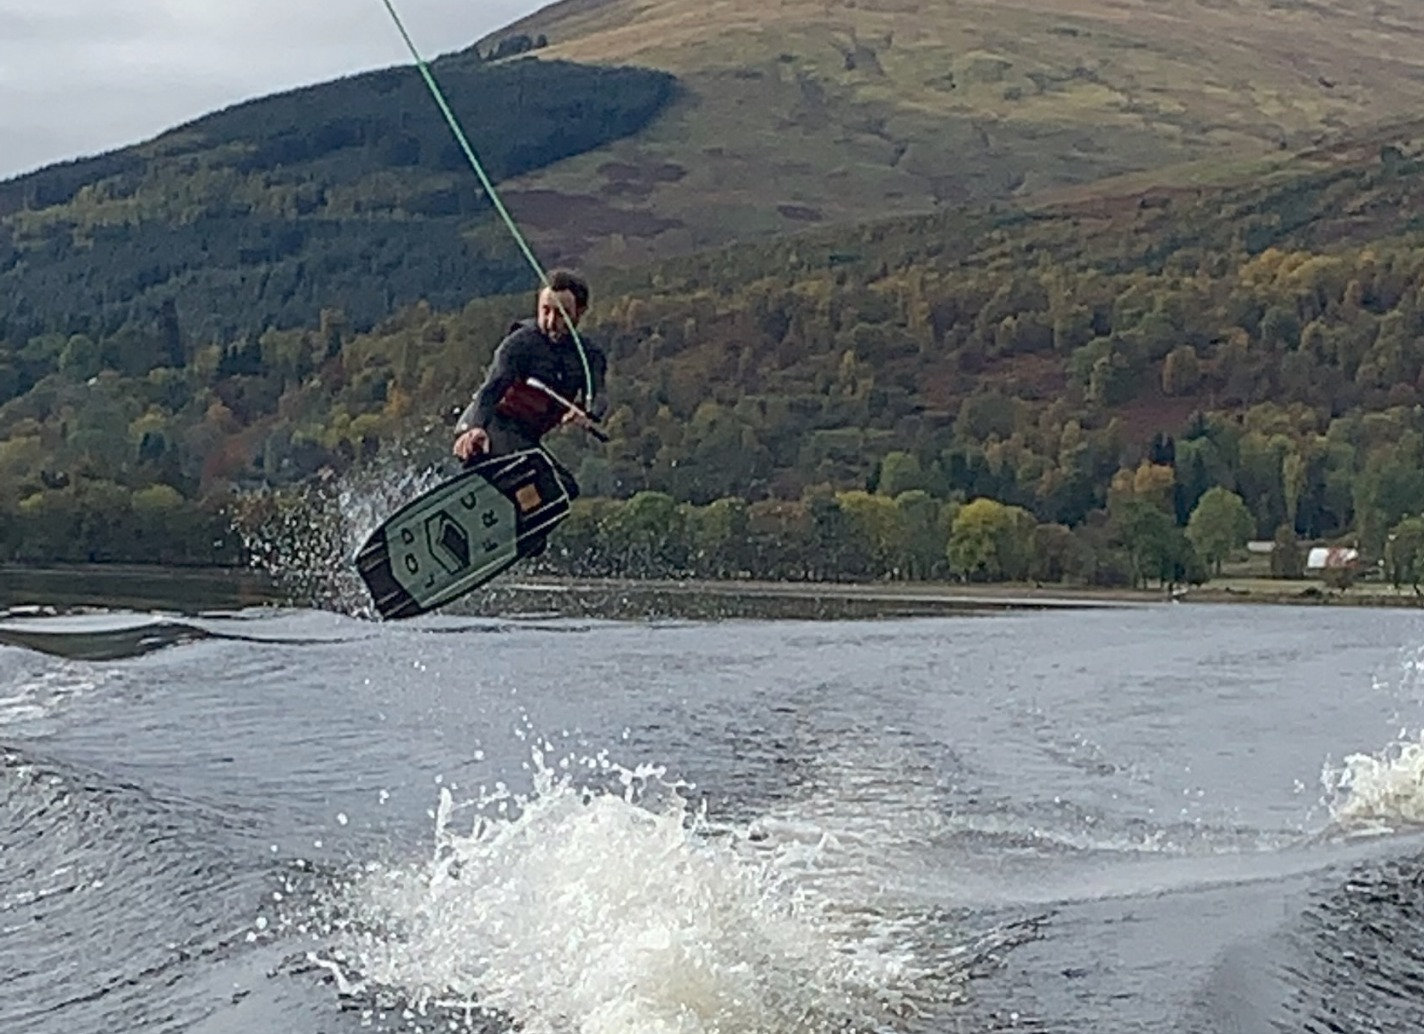 2 hour Wakeboard Session